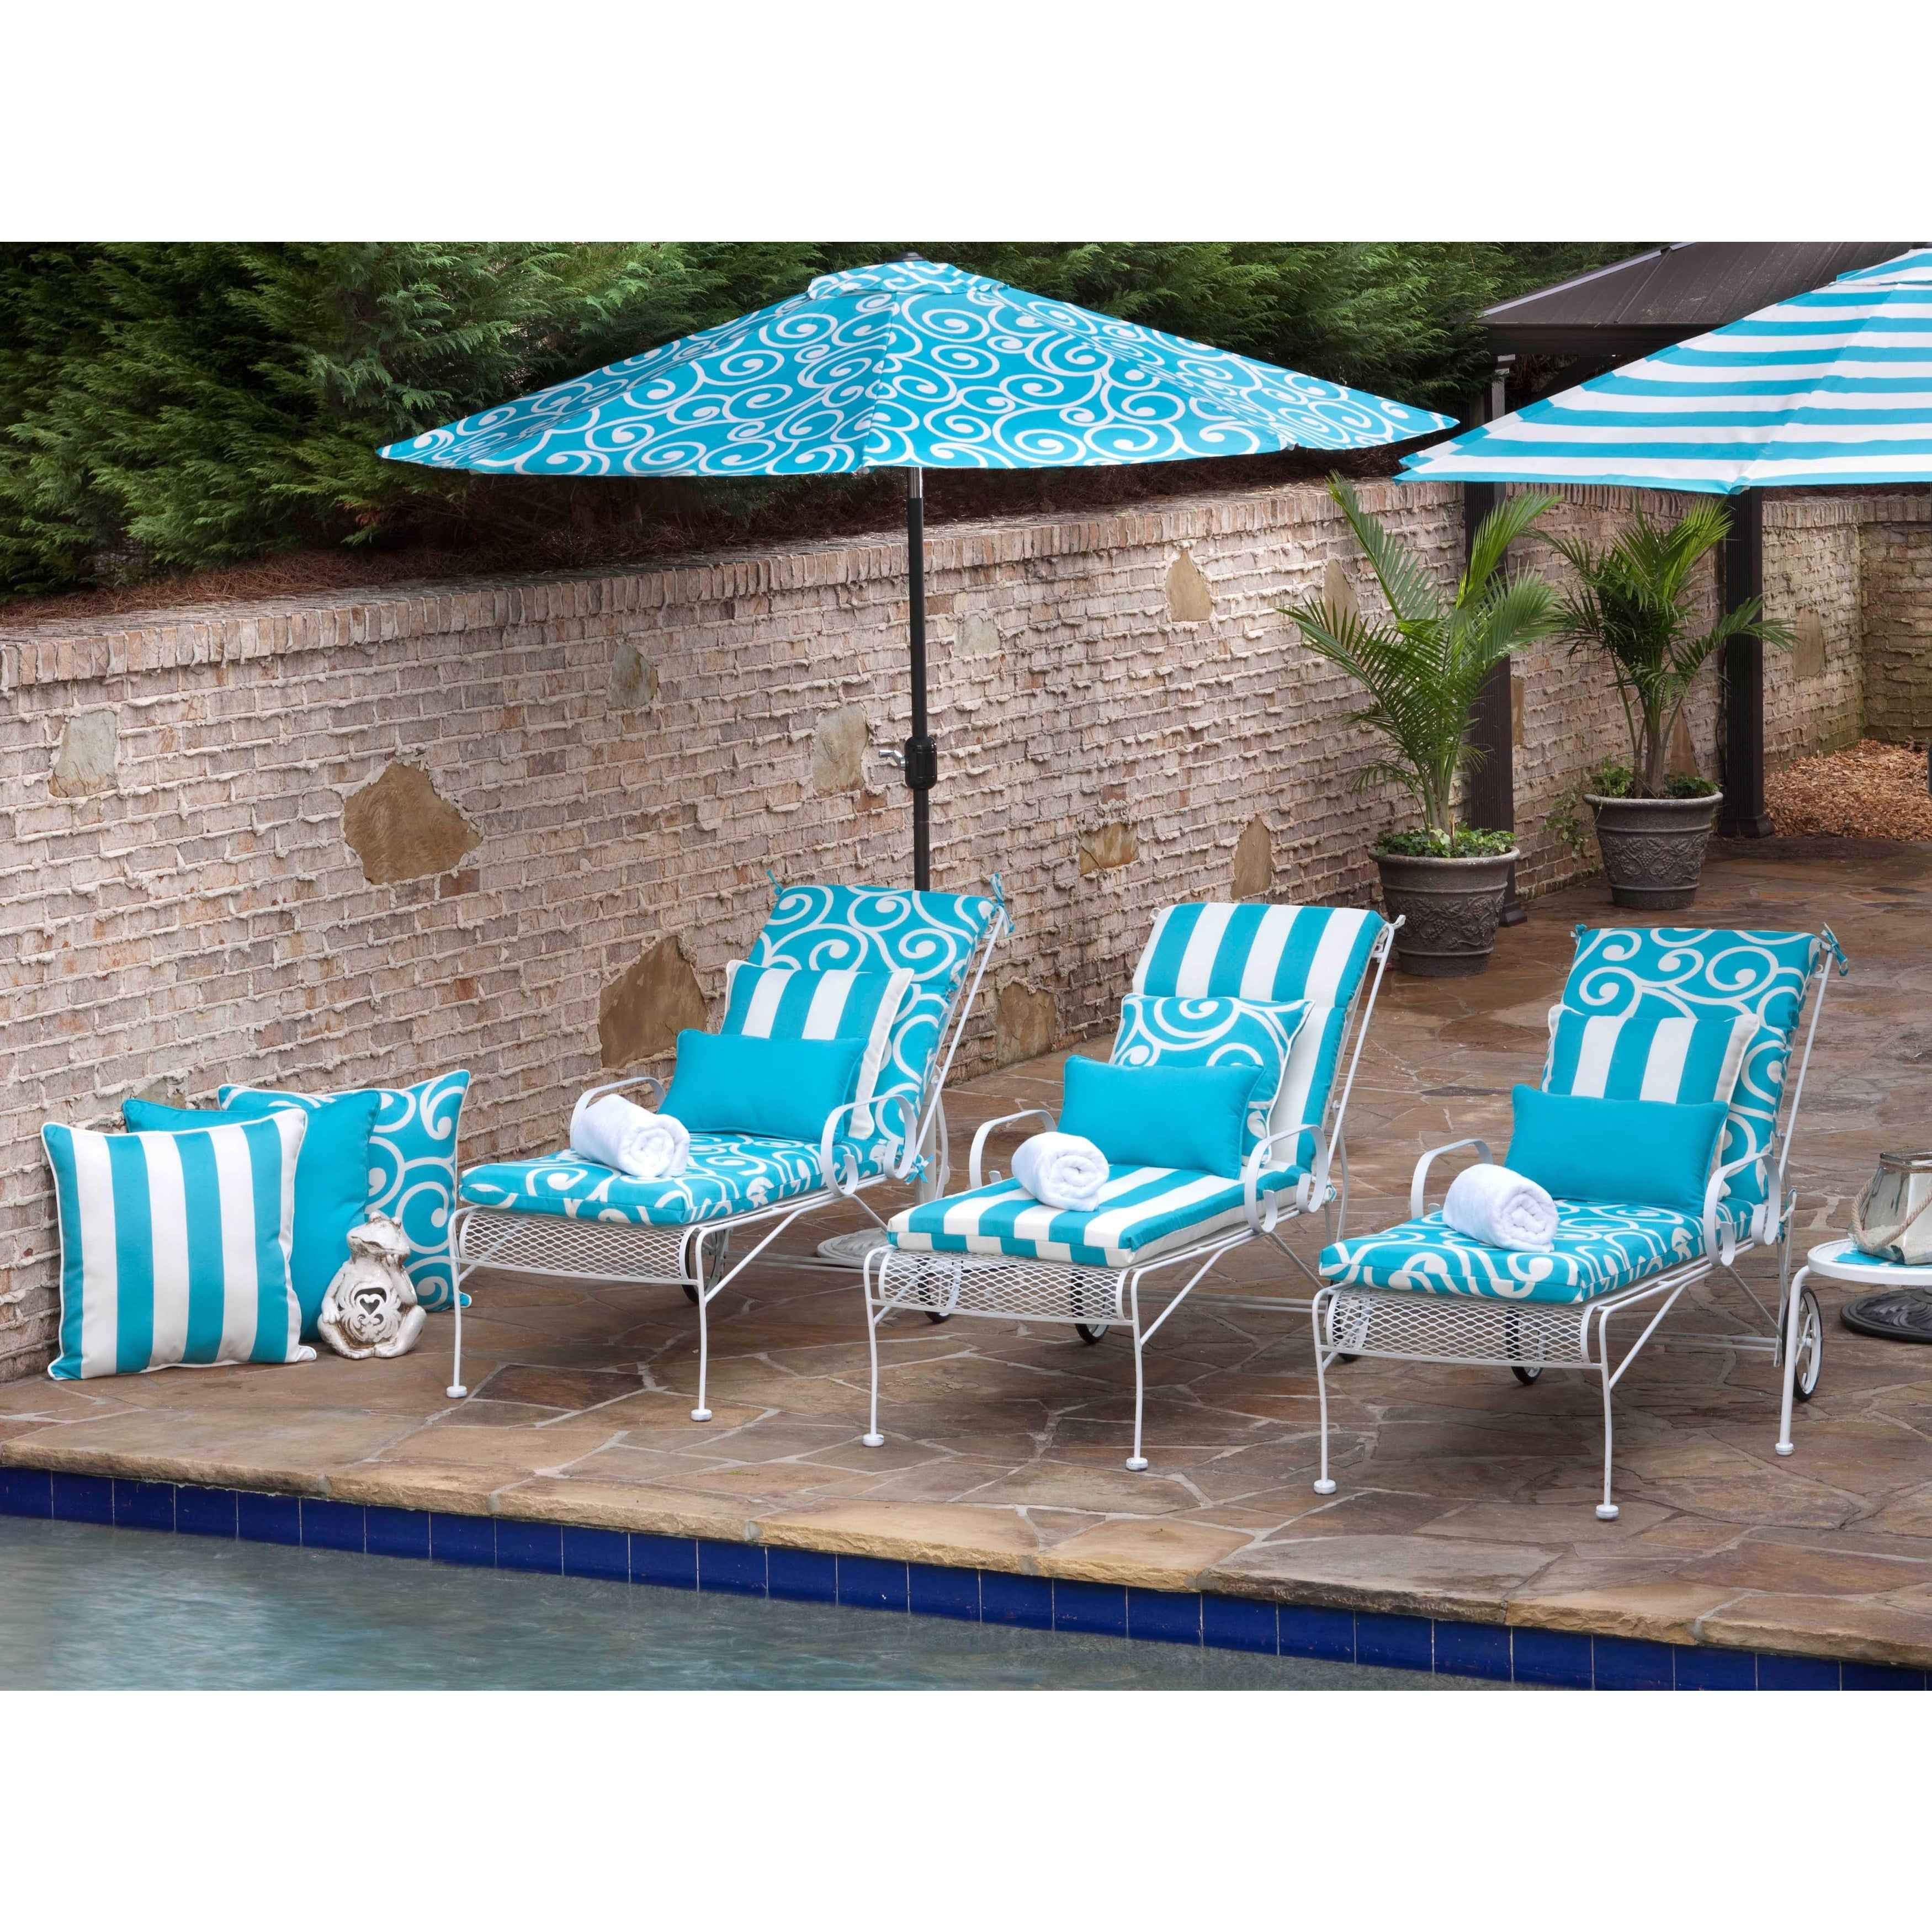 seat sunbrella furniture deep decoration turquoise outdoor patio protect home cushions